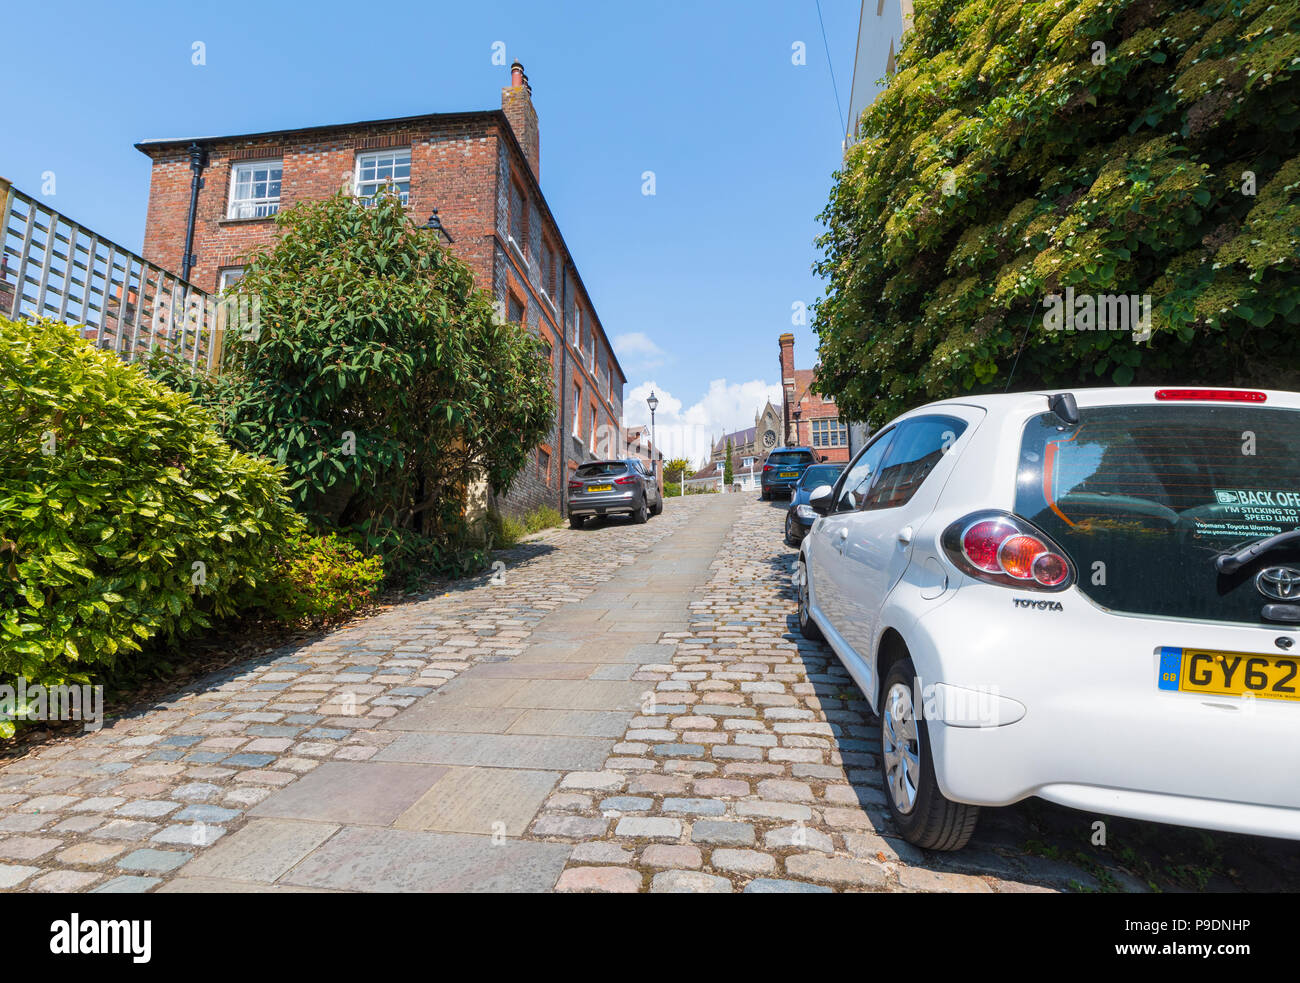 Cars parked on Kings Arms Hill, a historic cobbled road on a steep hill in the historic market town on Arundel, West Sussex, England, UK. - Stock Image